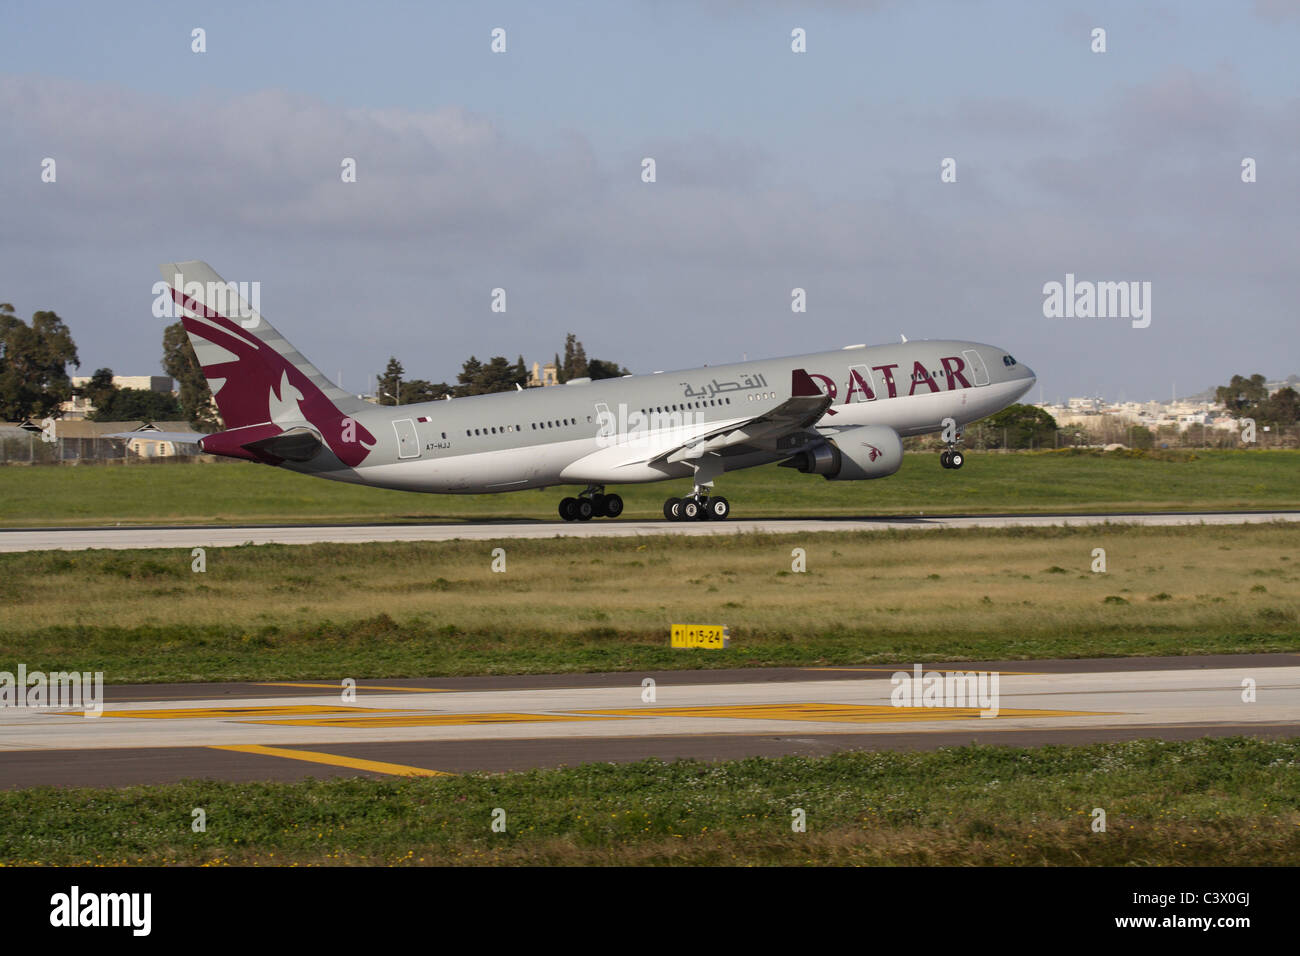 Airbus A330-200 of the Qatar Amiri Flight departing from Malta - Stock Image